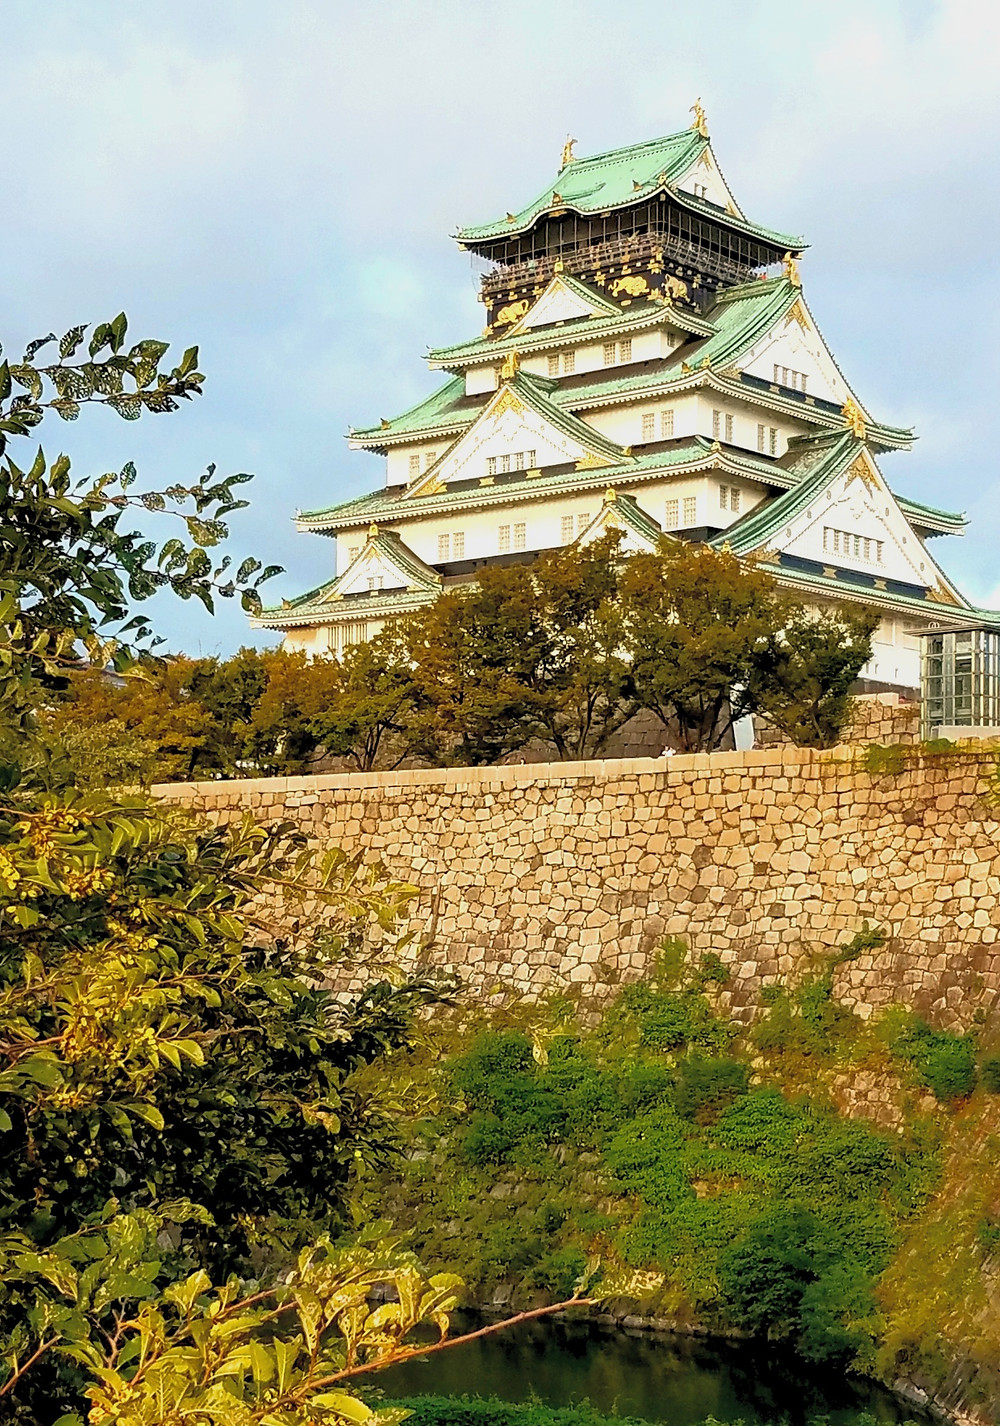 The famous landmark of Japan, Osaka Castle.